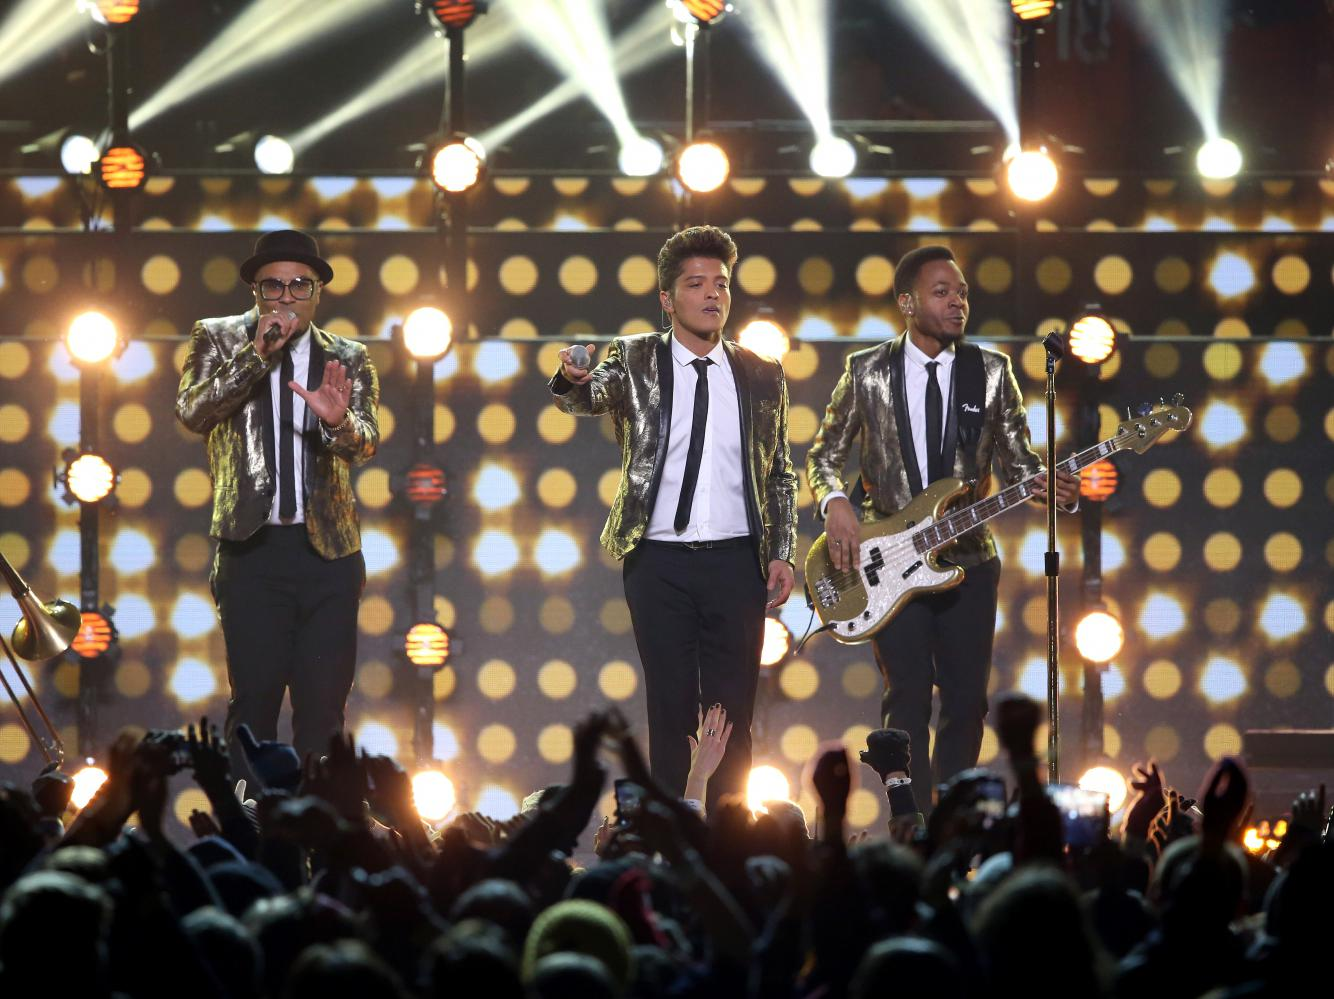 Super Bowl Regardez Bruno Mars Chanter Avec Les Red Hot Chili Peppers